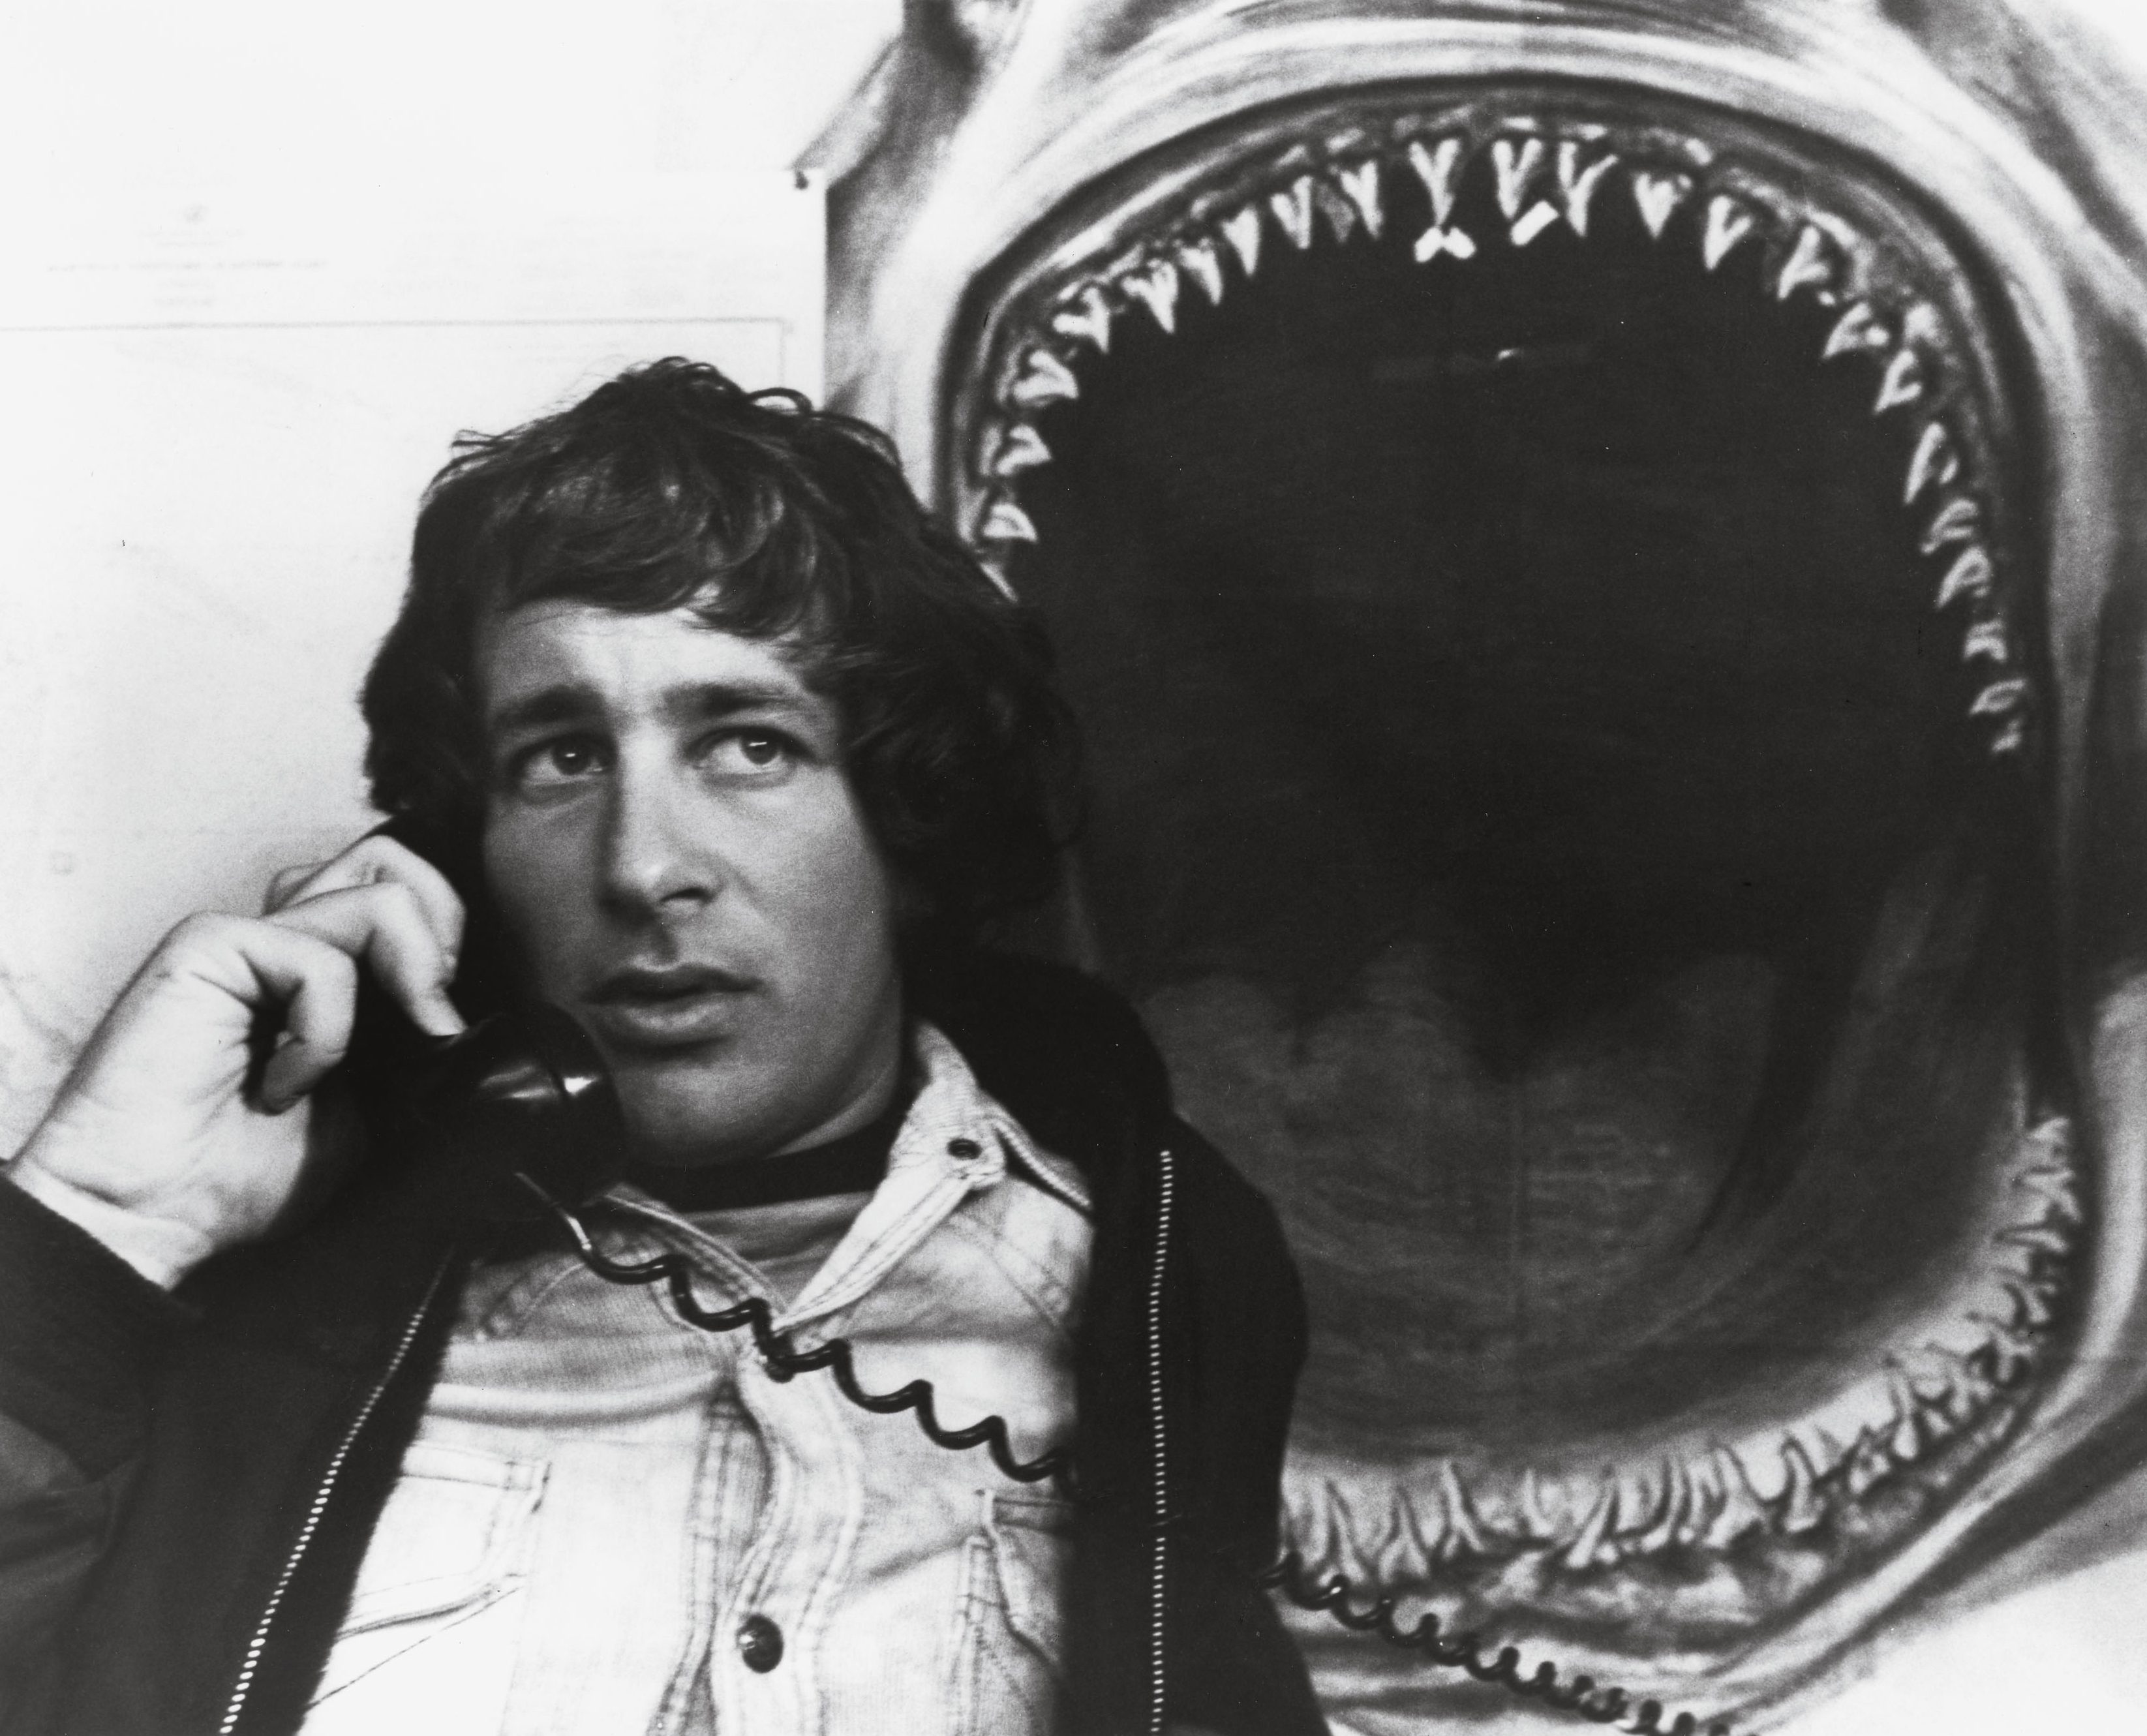 p044-spielberg-jaws-copyright-the-steven-spielberg-archive-universal-studios.jpg